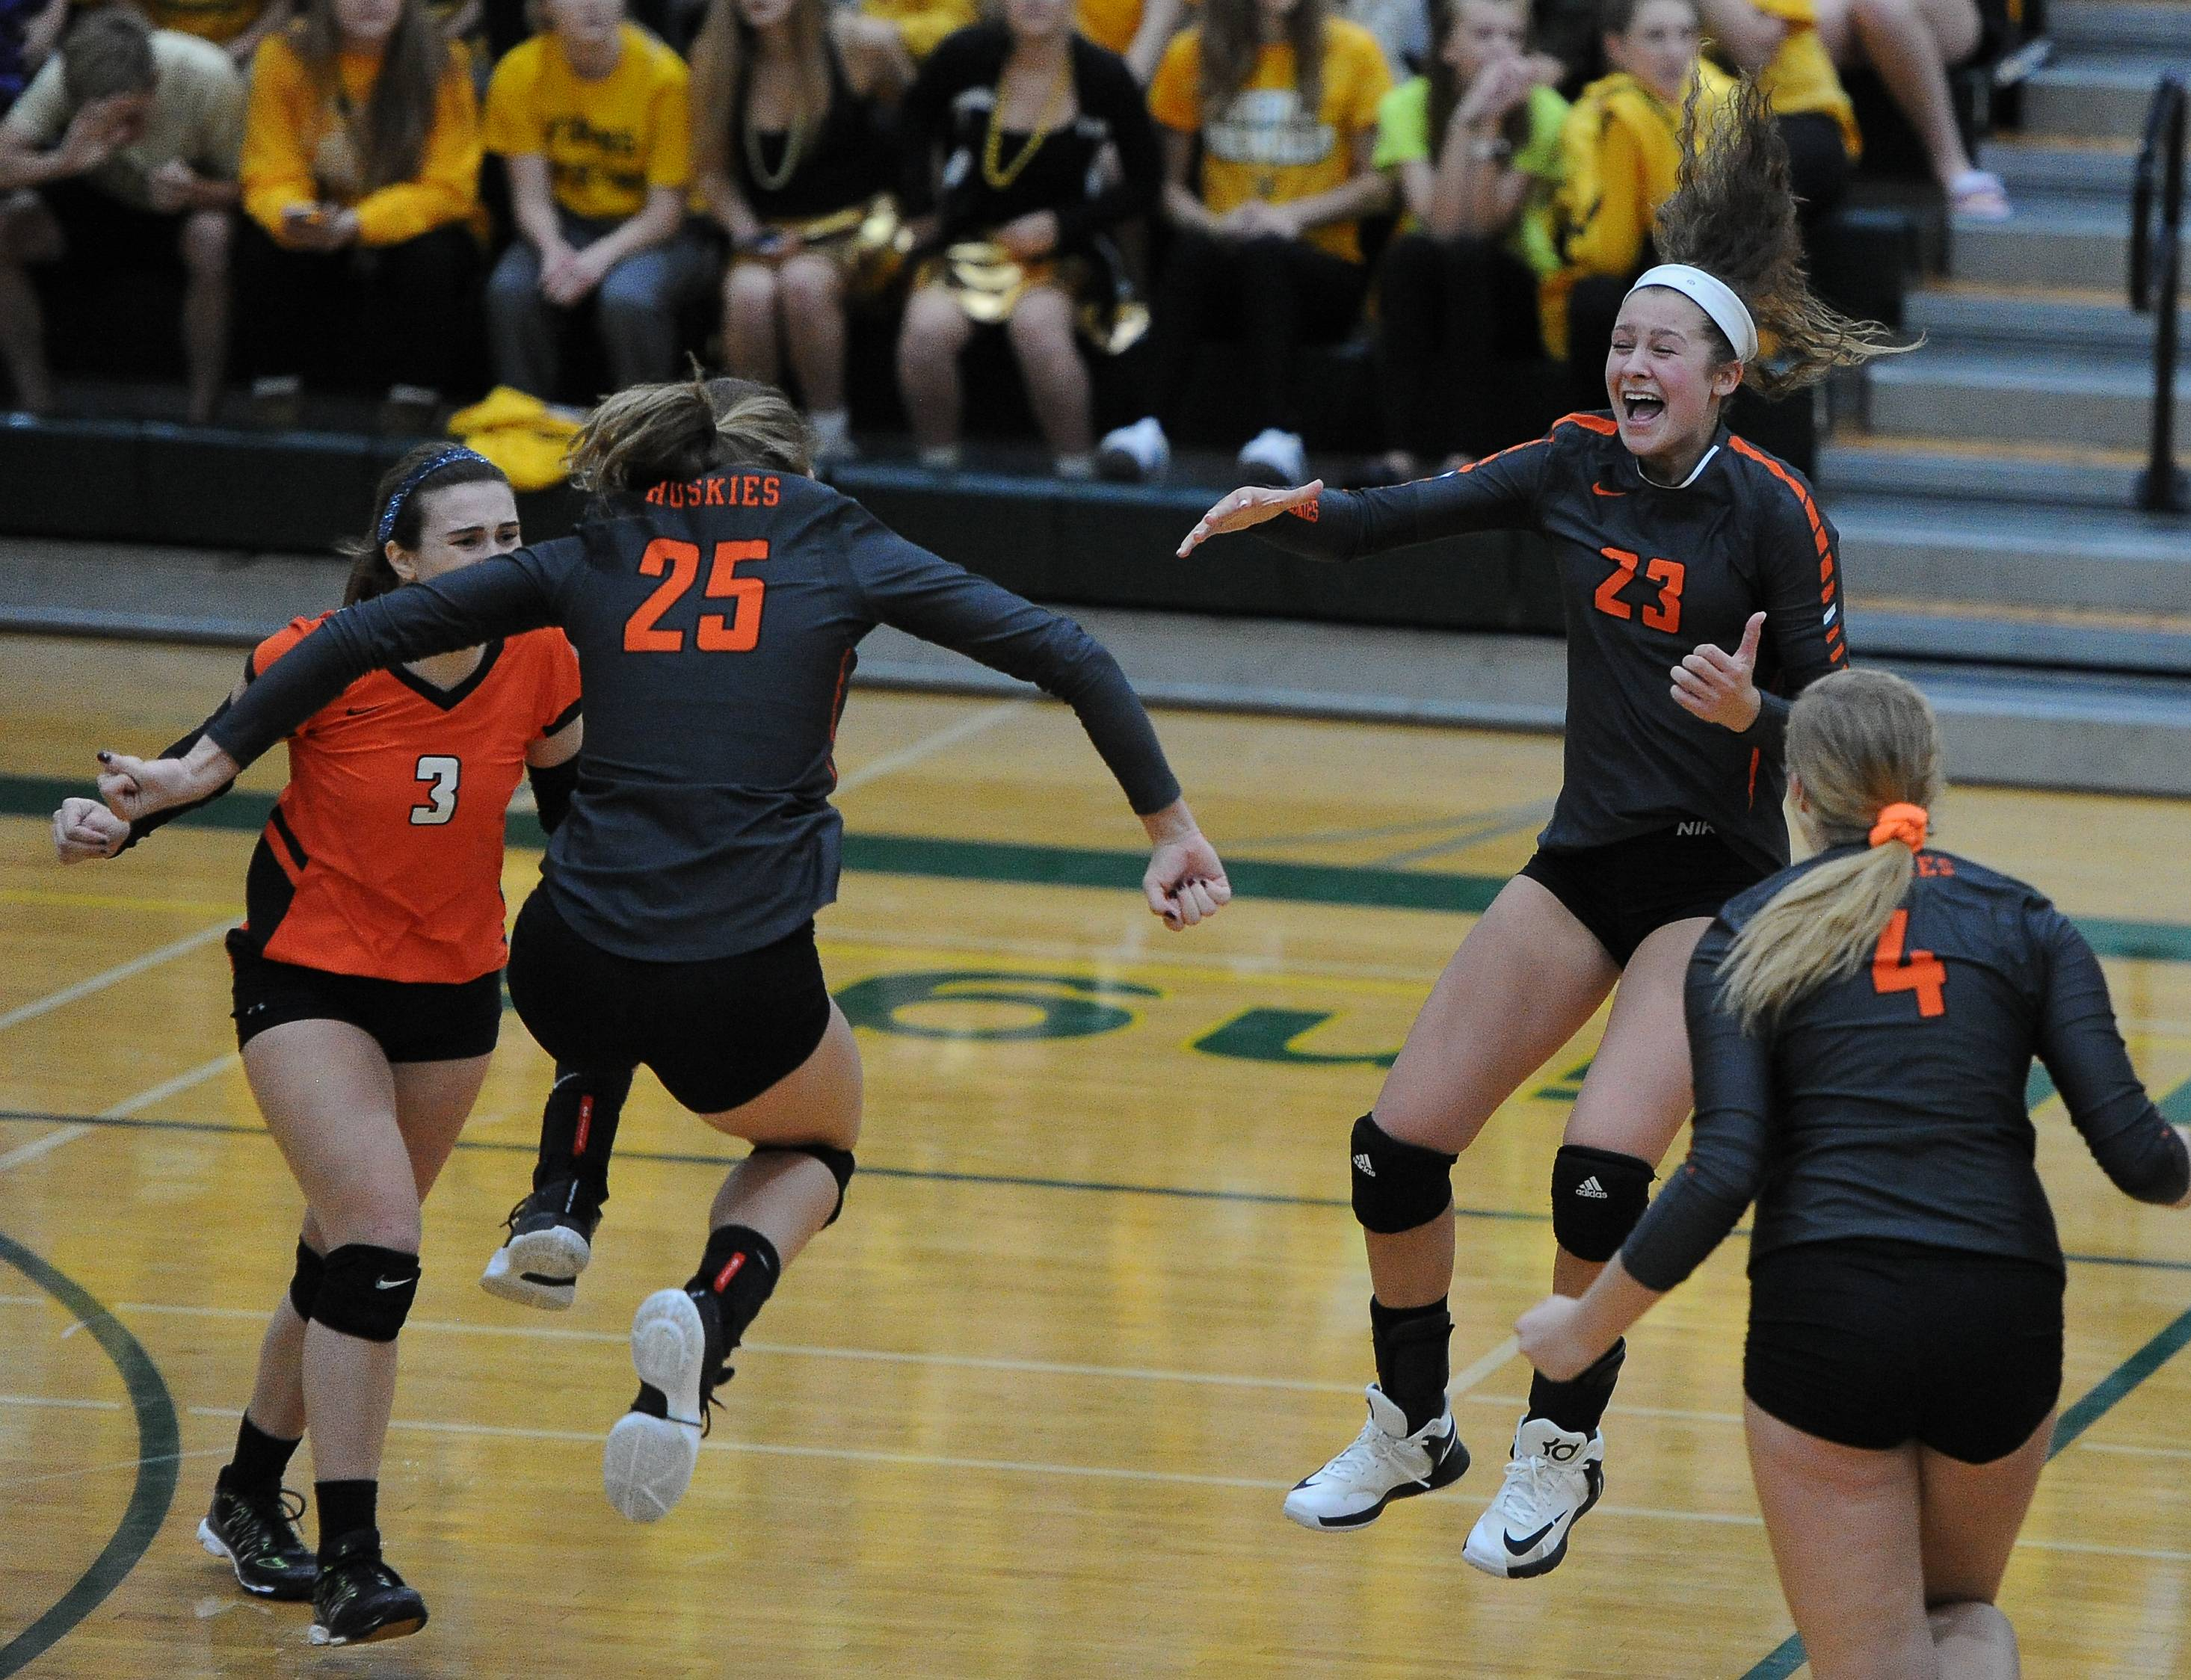 Hersey's Kati Kaburov and Alessia Olhava seem to defy gravity as the Huskies claim the Mid-Suburban League championship in two sets Thursday at Fremd.